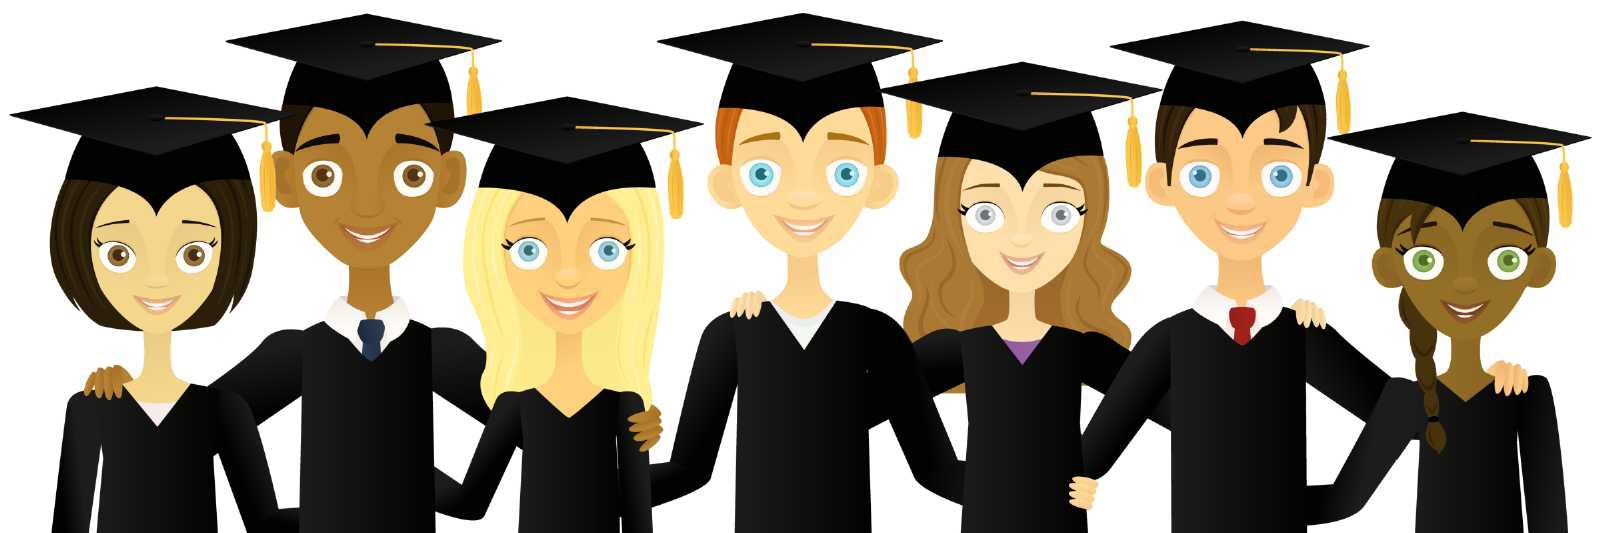 Image showing students in cap and gown